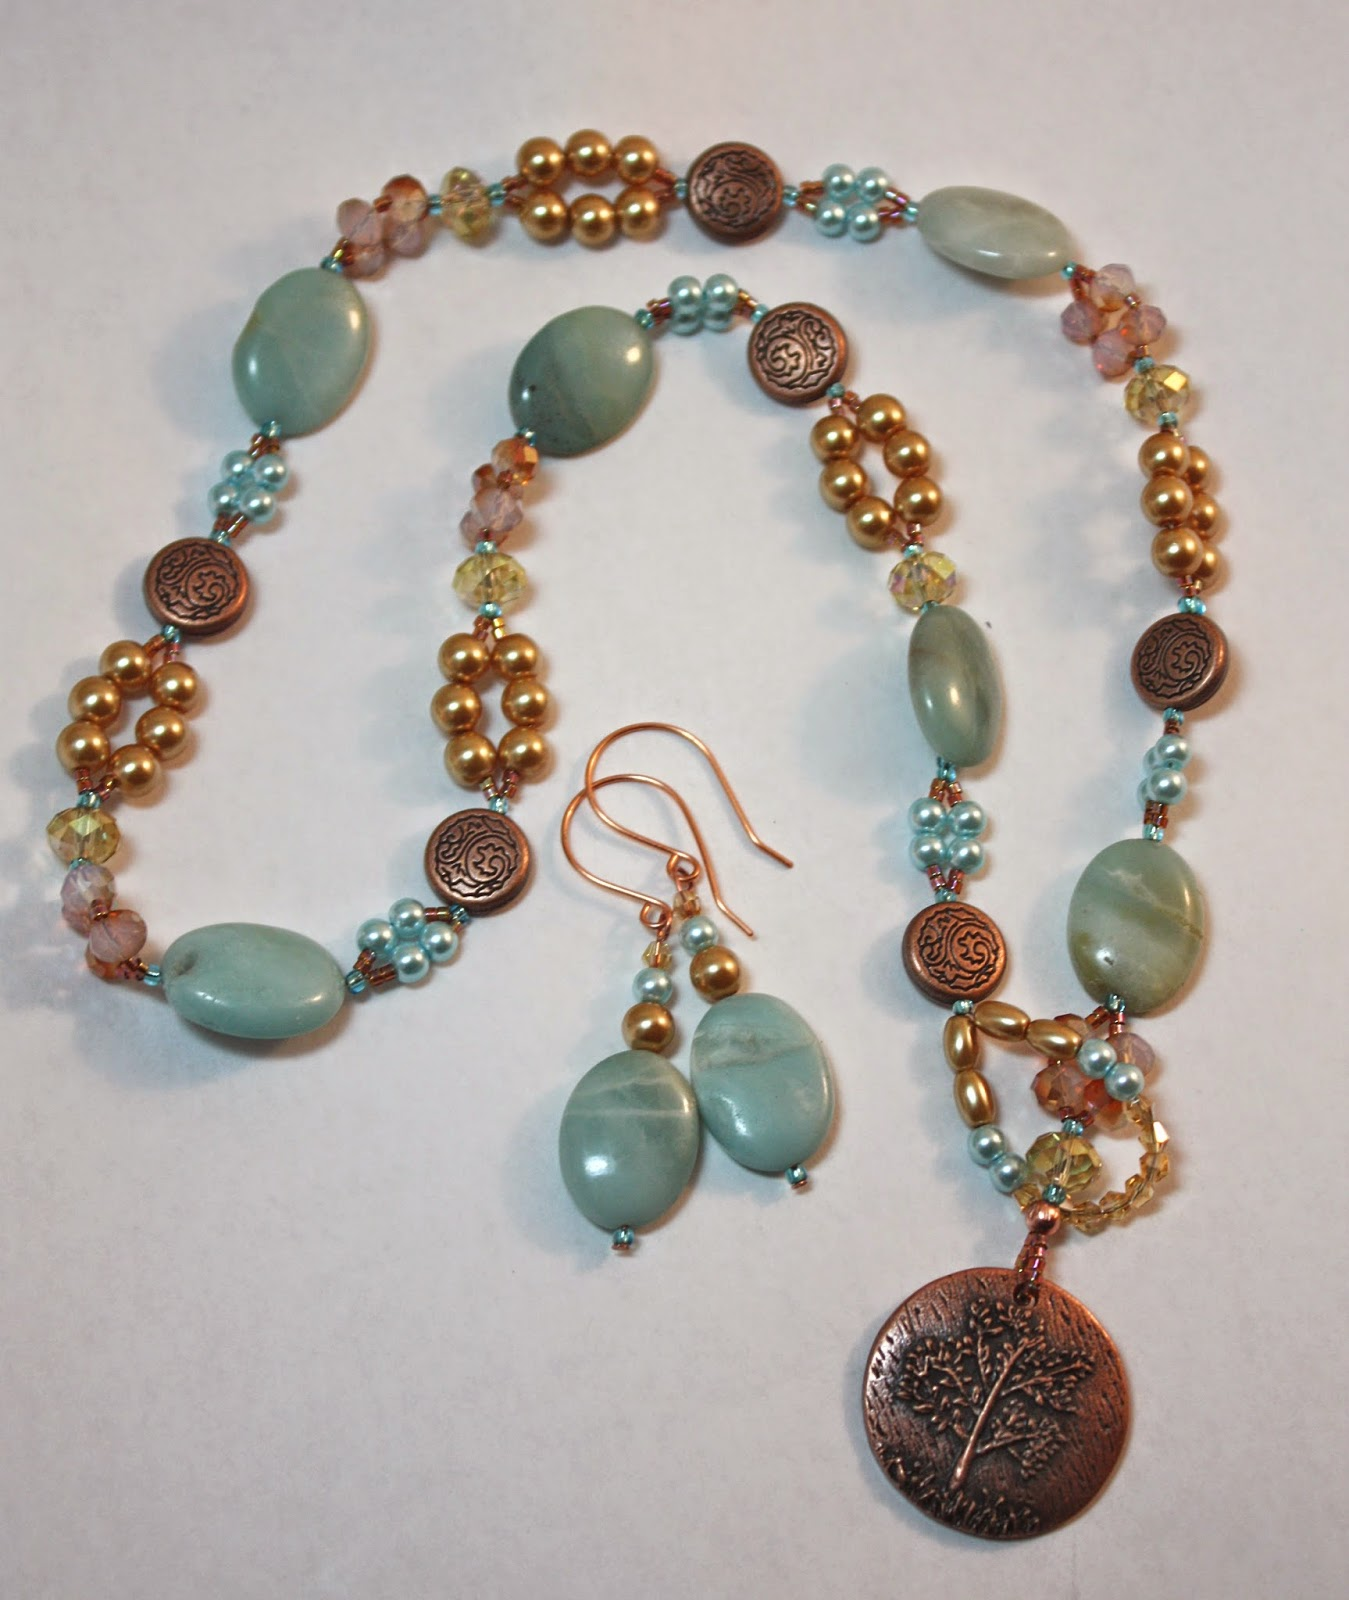 Winter 2013-2014 Lariat Necklace by Tammie Everly